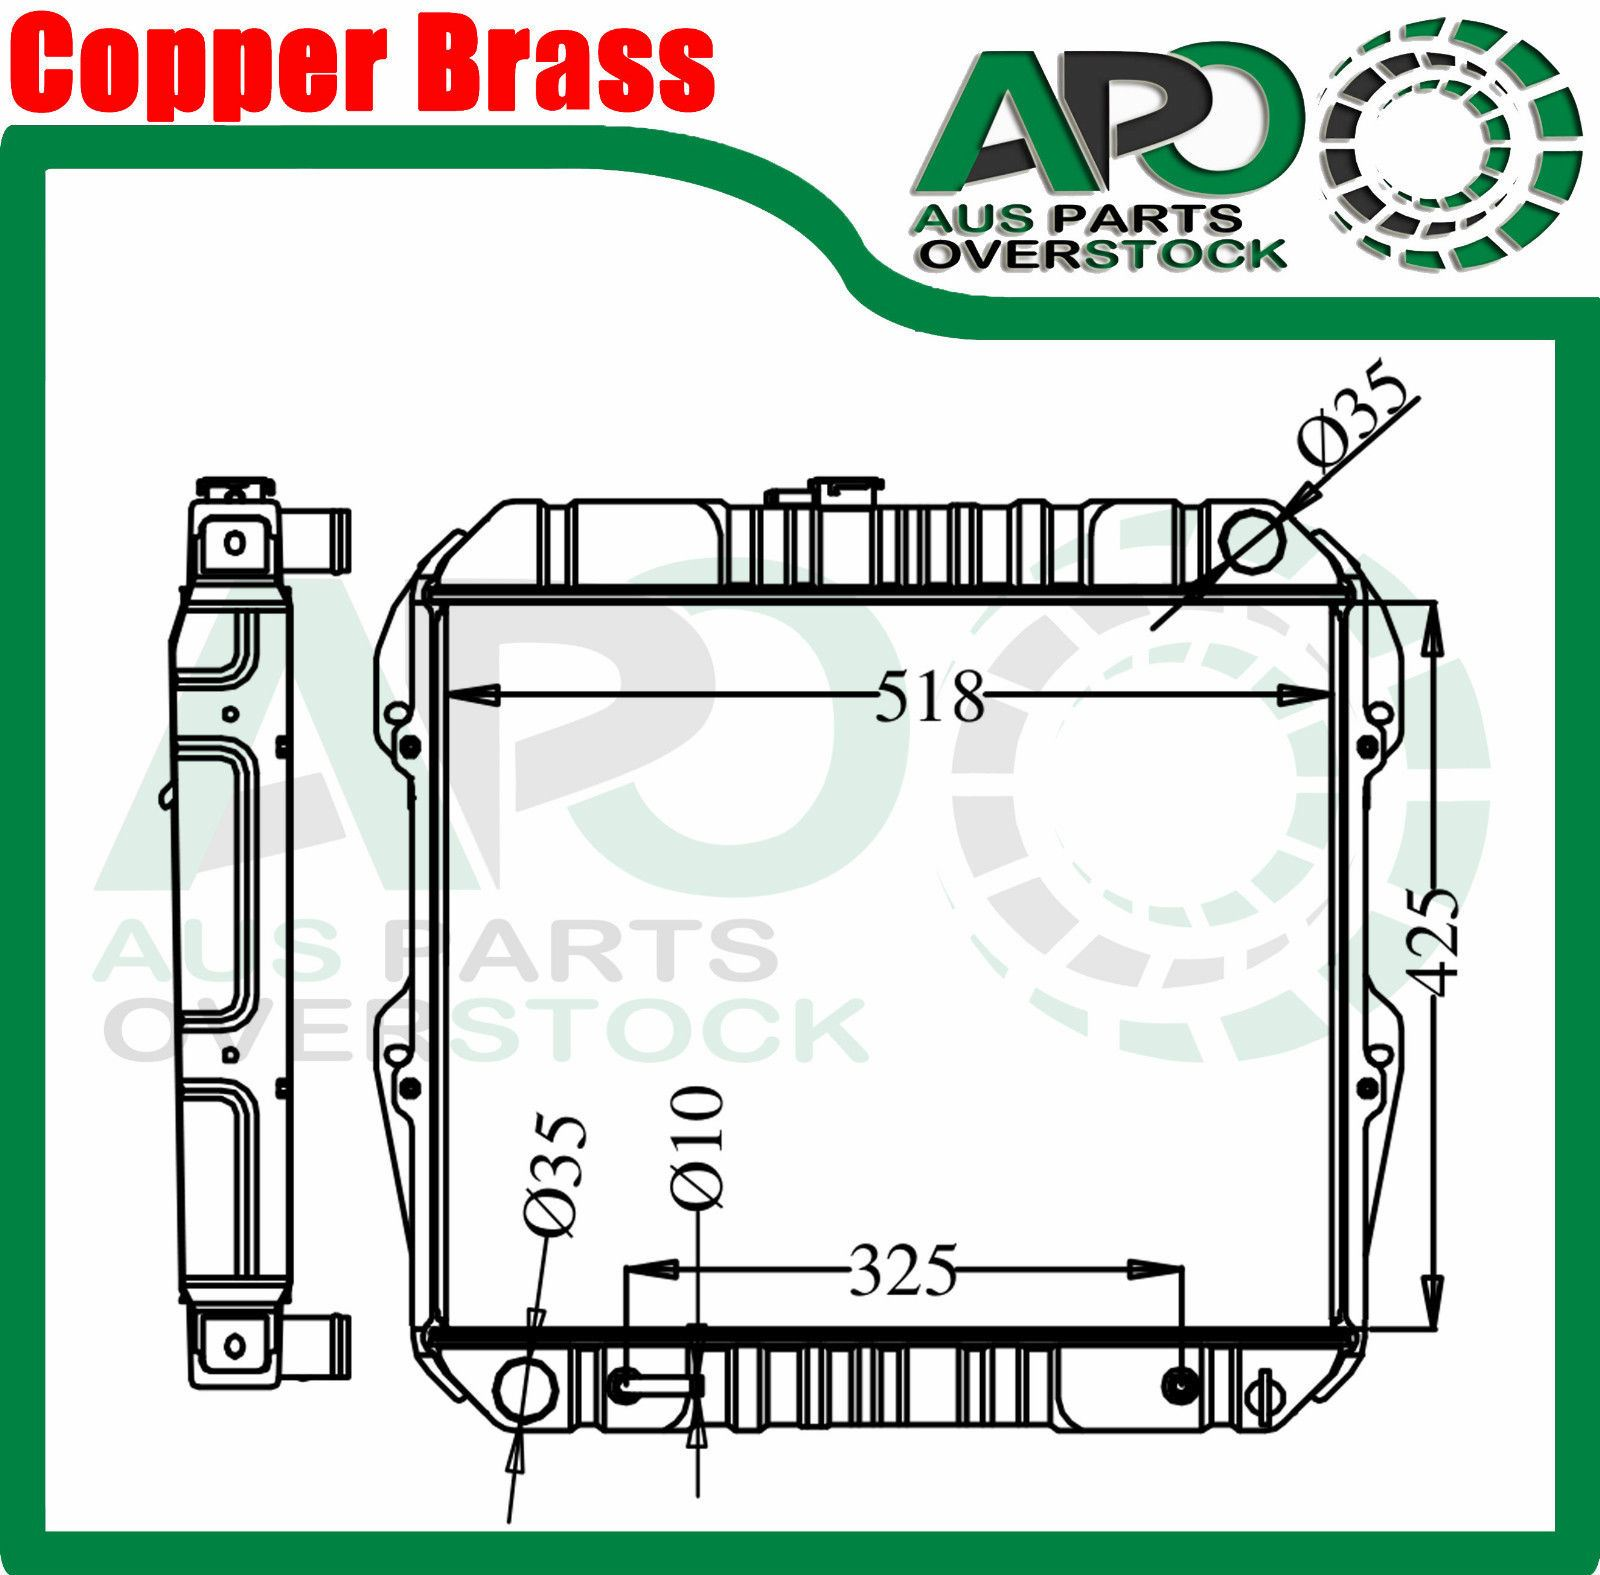 hight resolution of 3 core copper brass radiator toyota hilux 83 97 rn85 yn85 rn90 22r 4cyl petrol